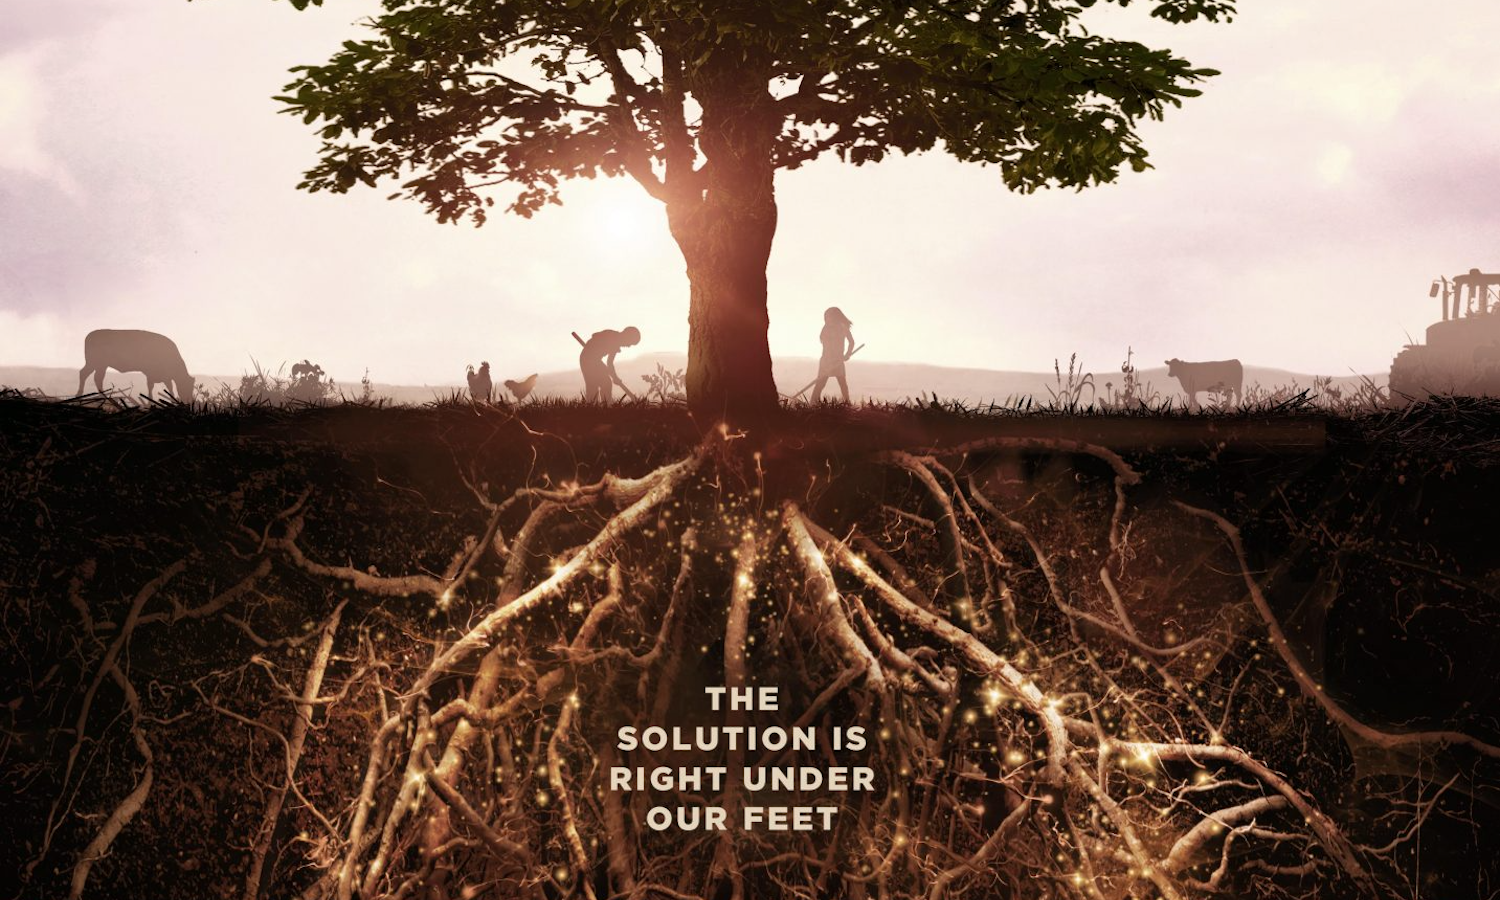 Kiss the Ground, a new film premiering on Netflix September 22, aims to inspire action and soil regeneration